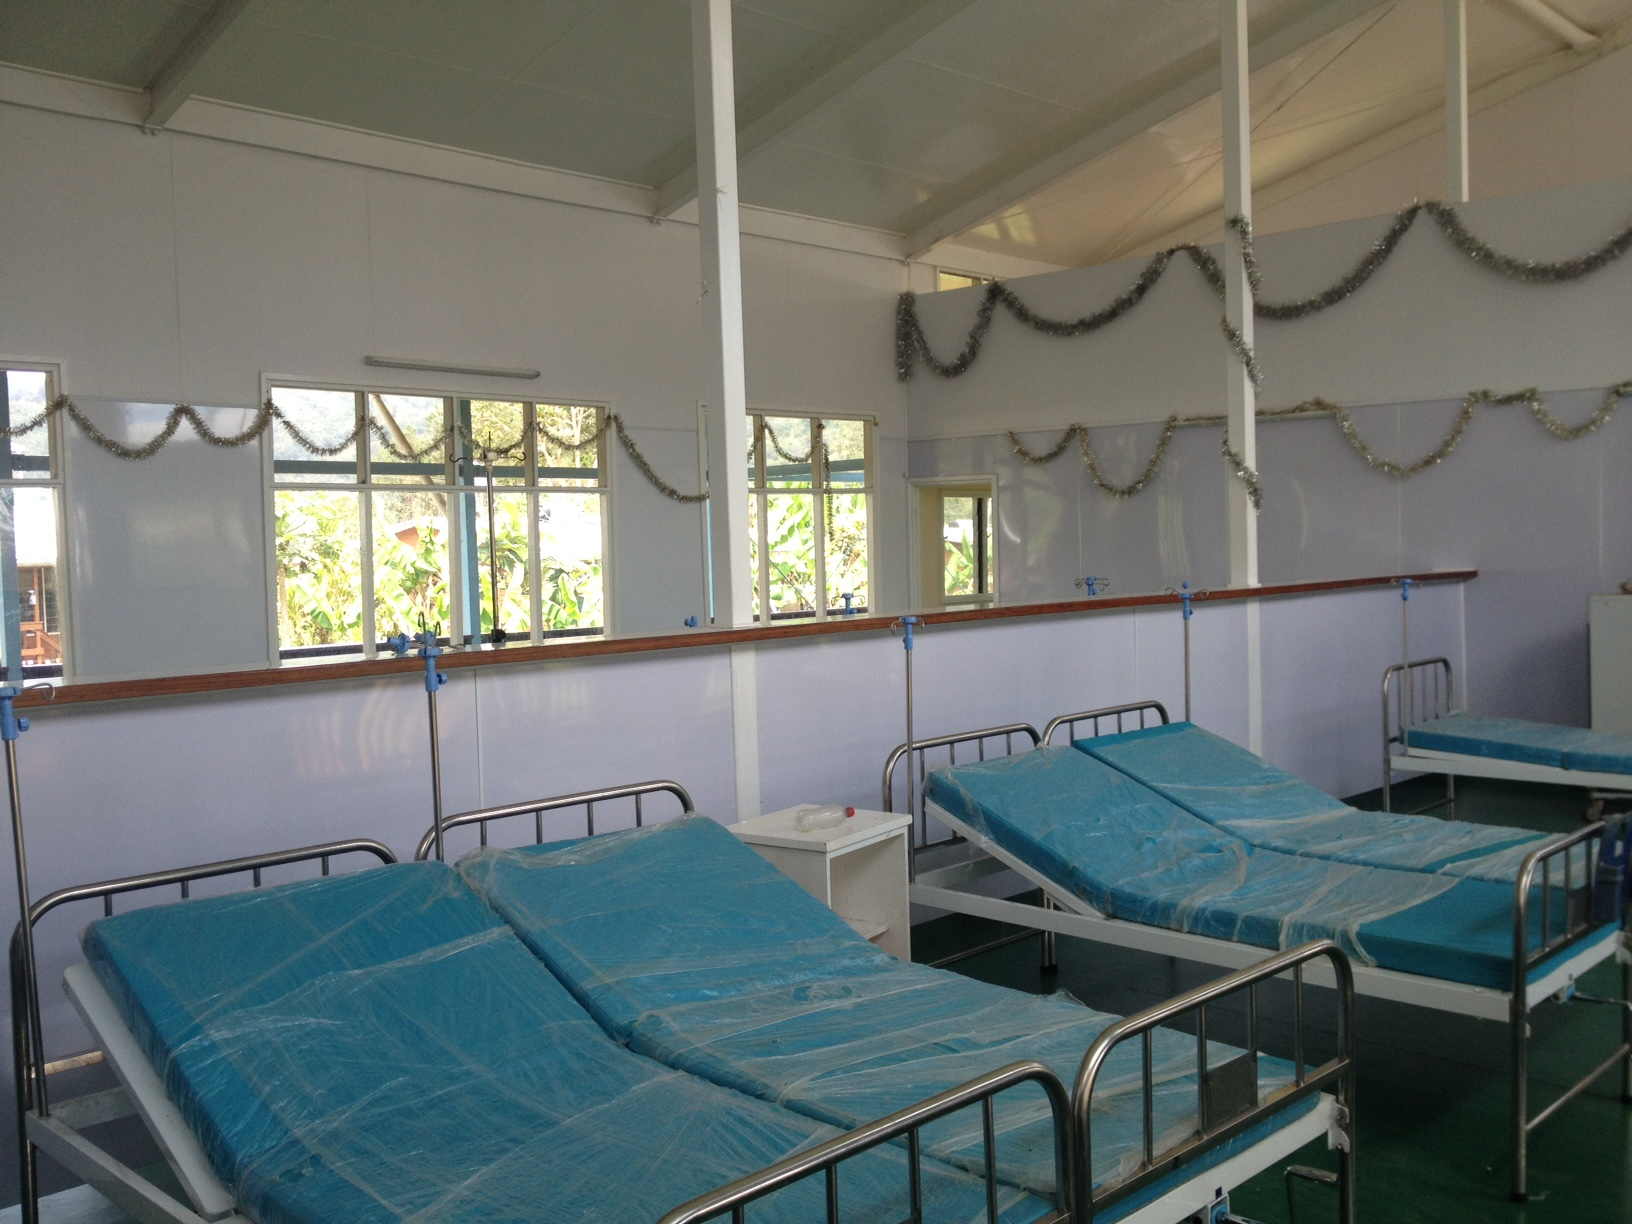 Inside the new maternity wing